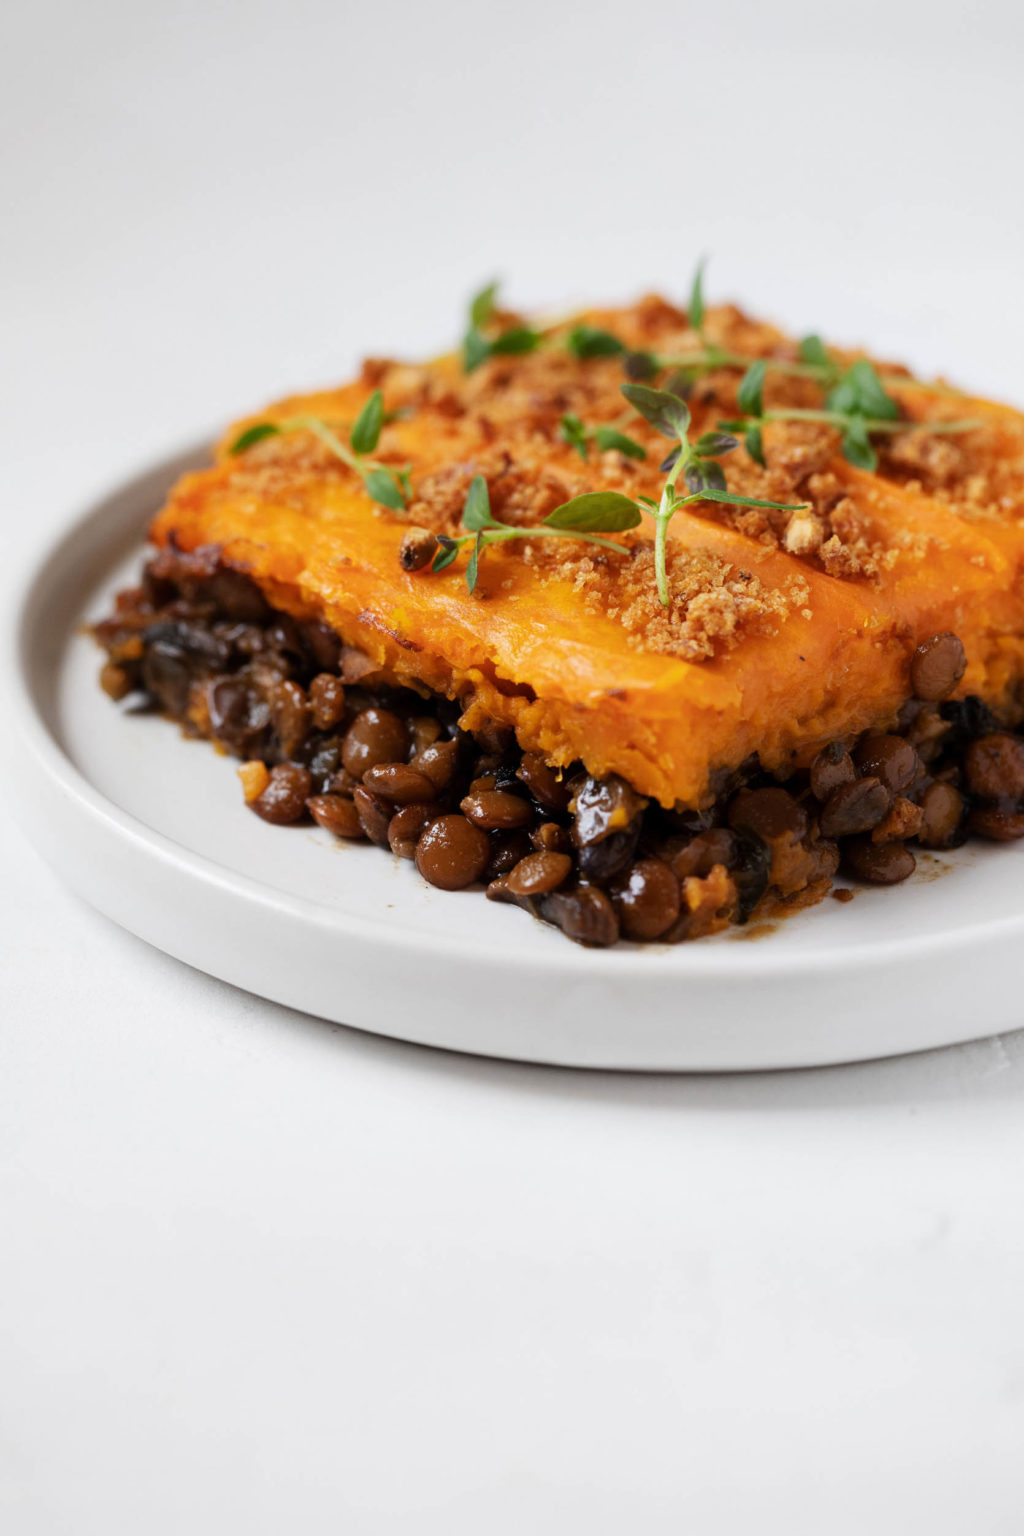 Sauteed lentils and mushrooms are baked with a sweet potato topping and cut into squares.